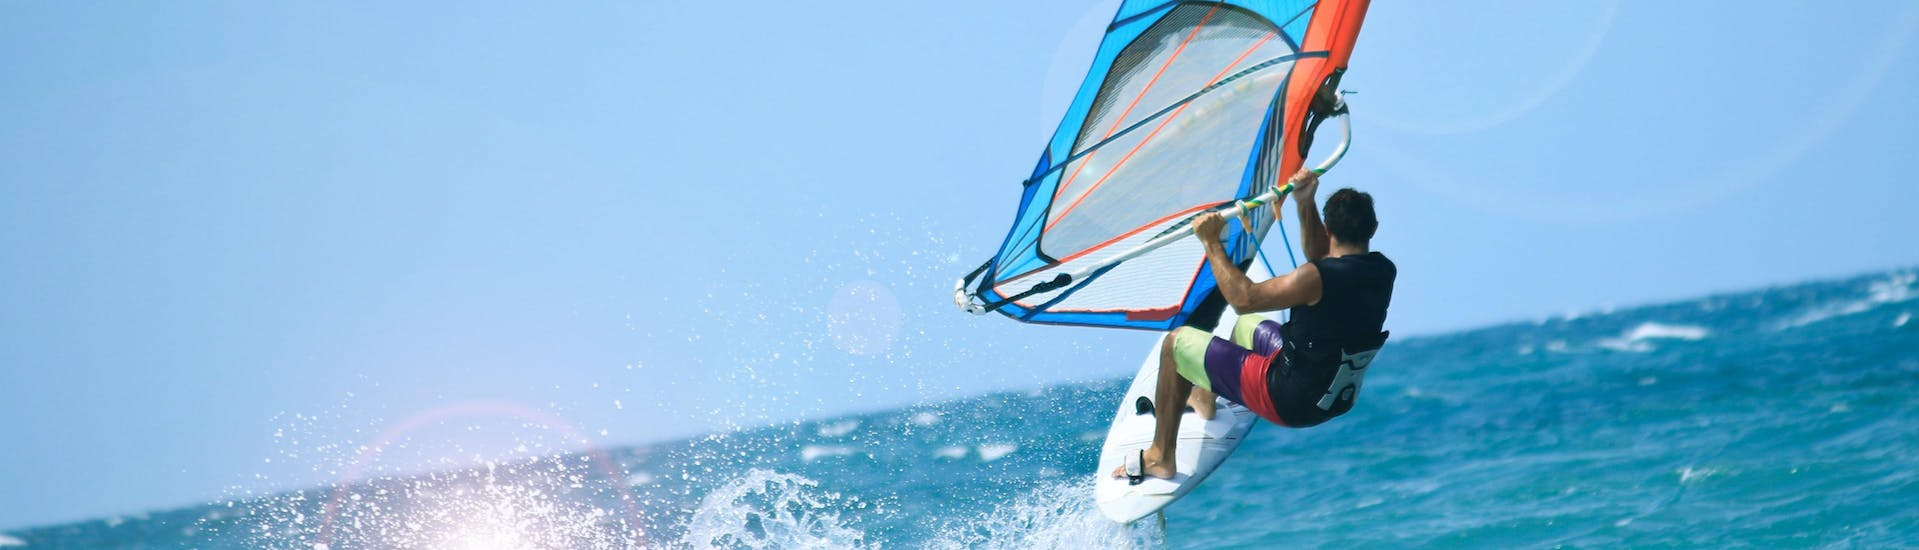 A young man windsurfing in the holiday destination of Canary Islands.